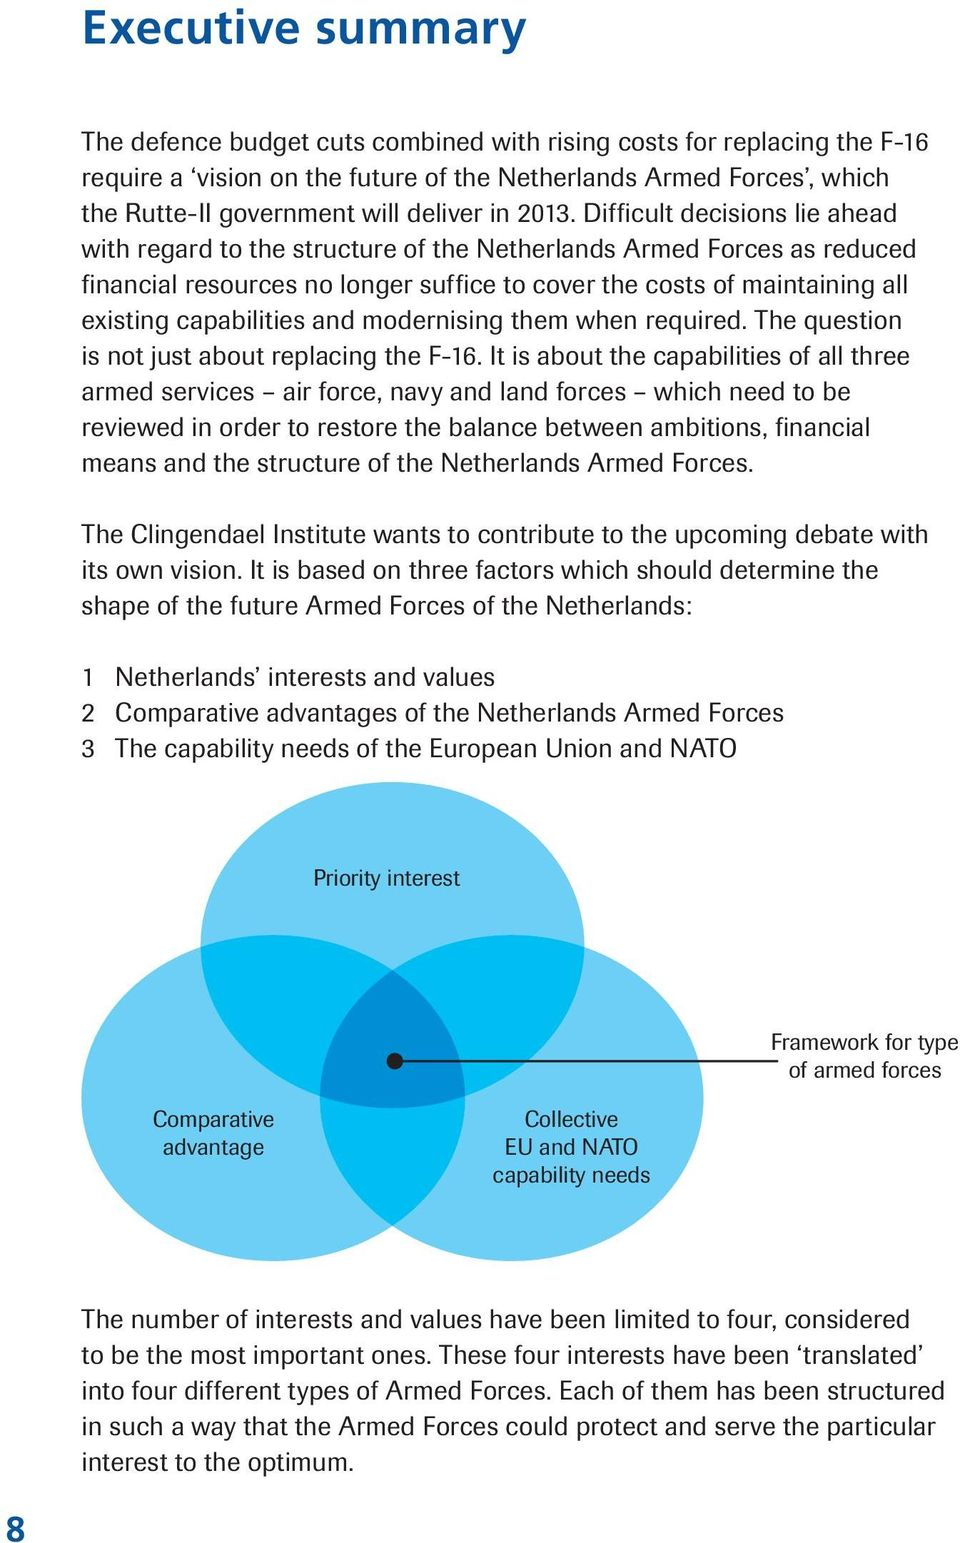 Difficult decisions lie ahead with regard to the structure of the Netherlands Armed Forces as reduced financial resources no longer suffice to cover the costs of maintaining all existing capabilities